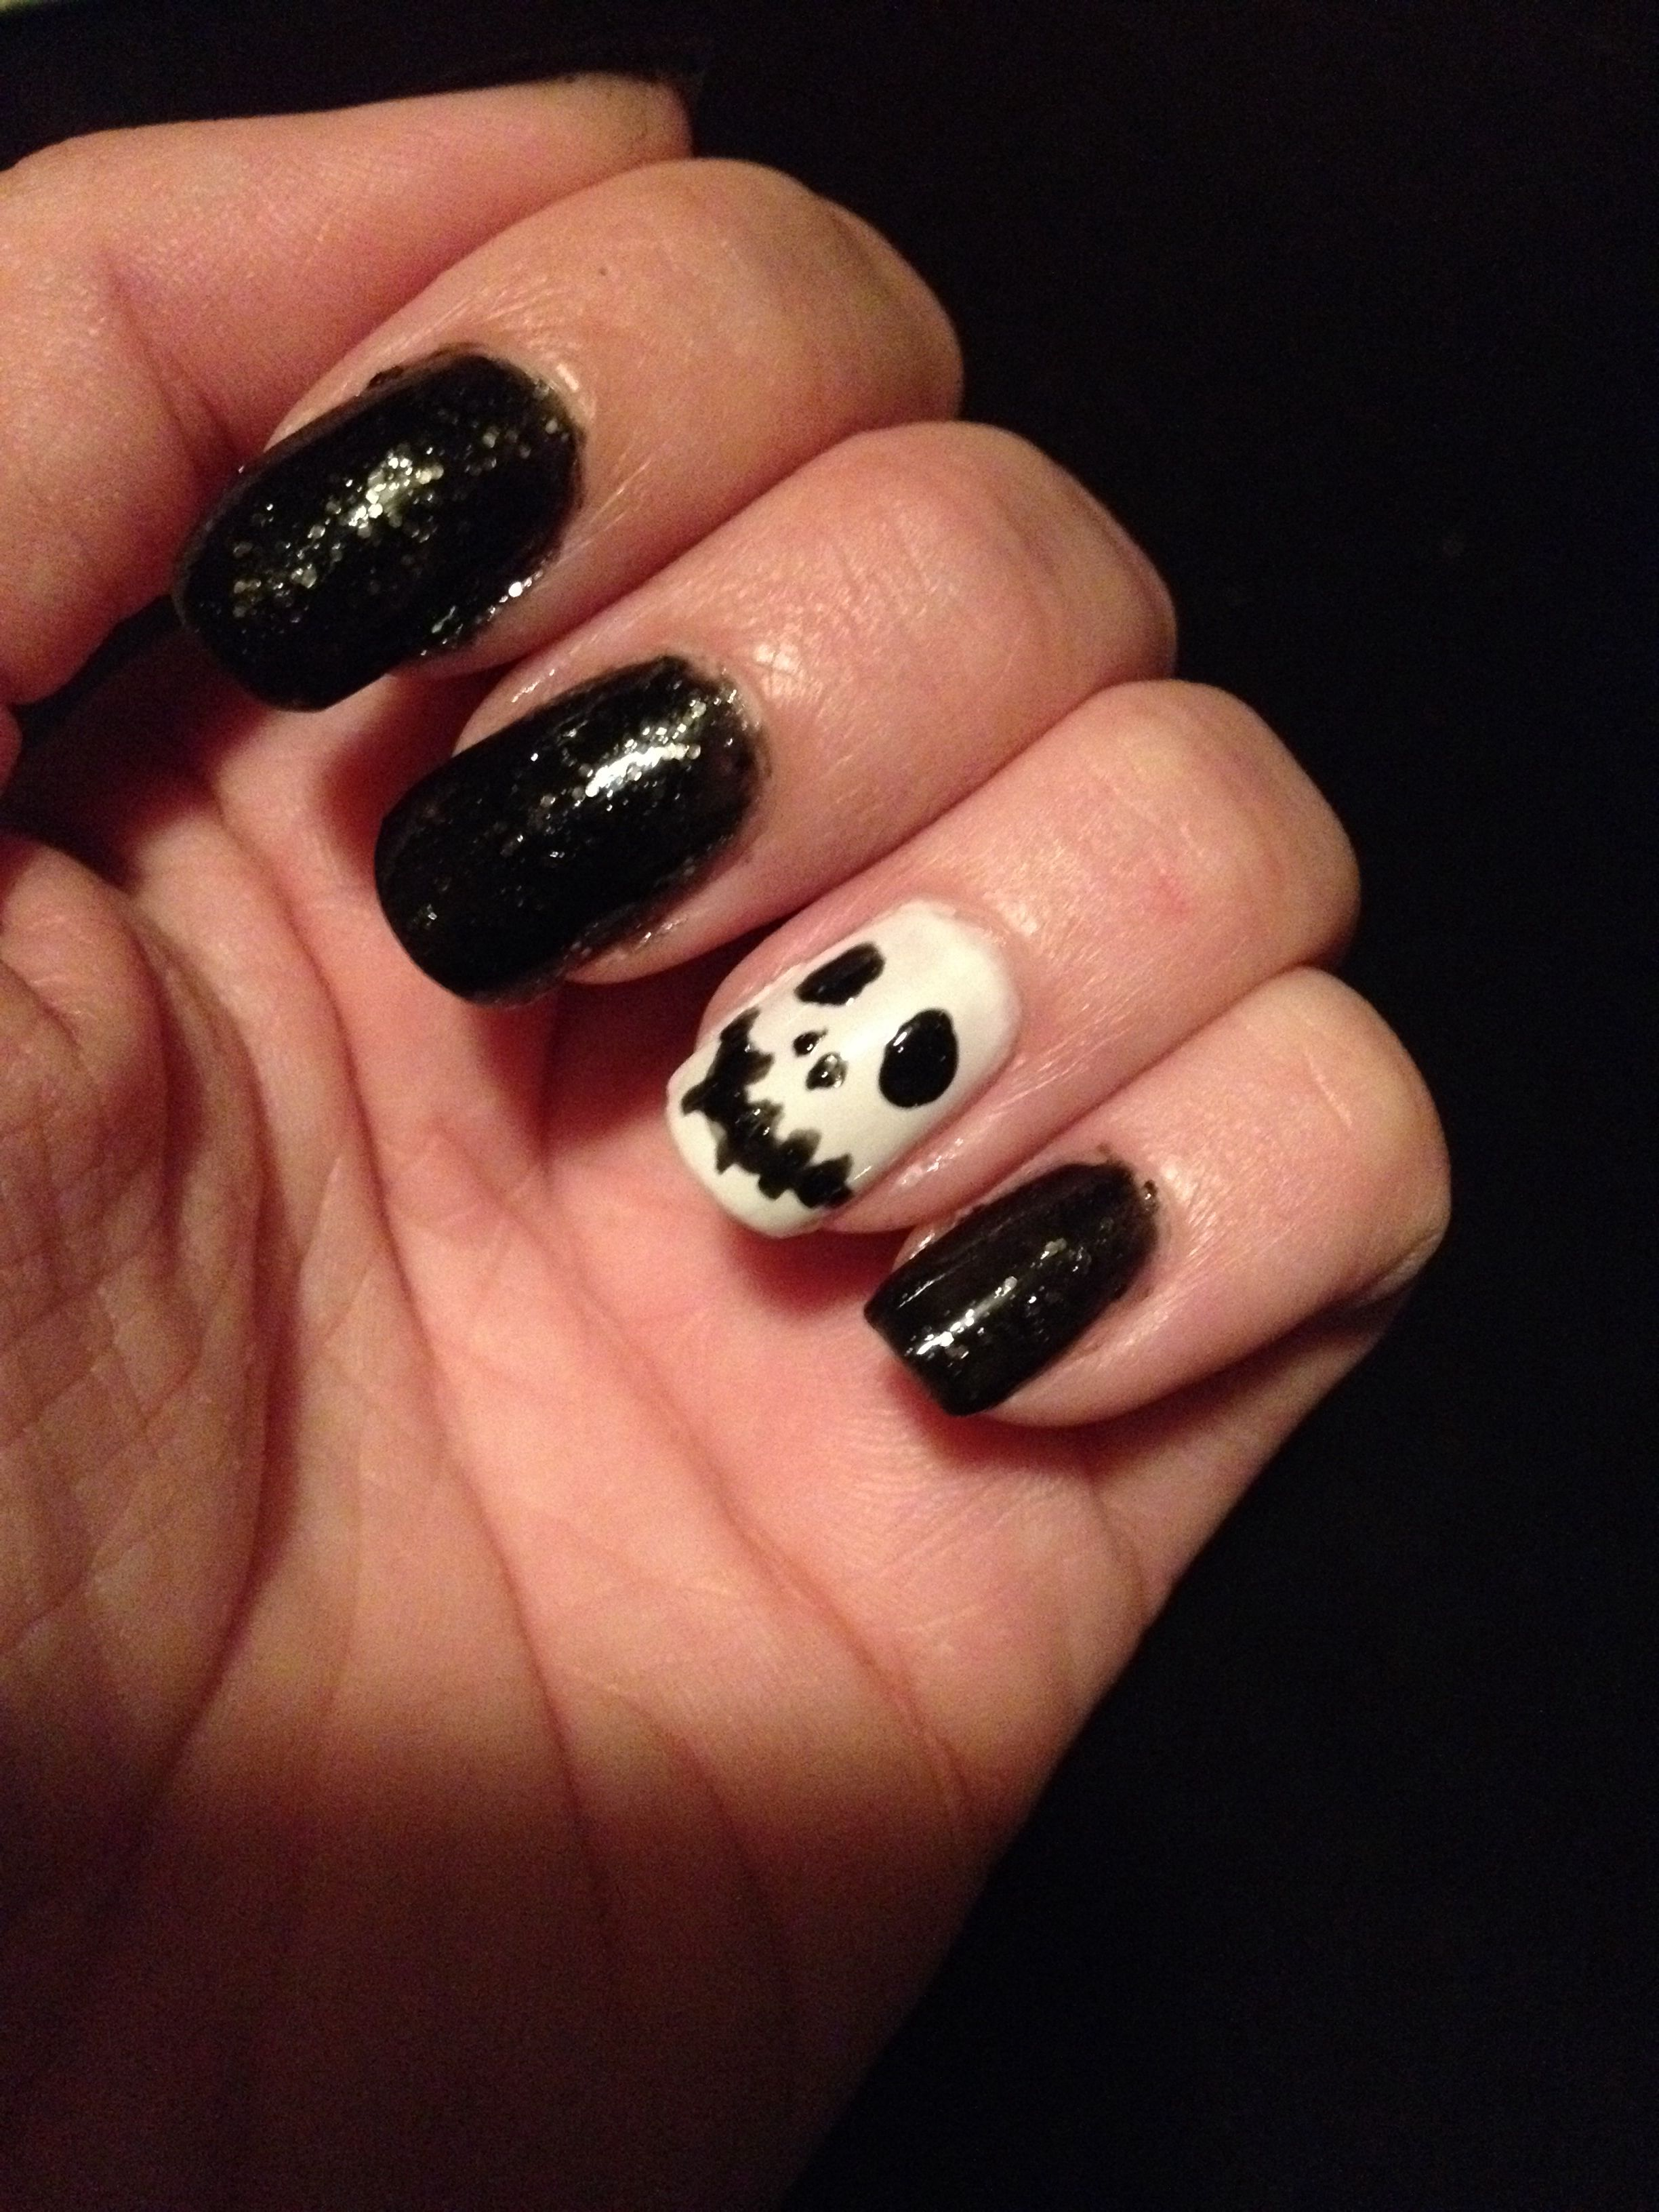 #Halloween fun with nail polish while catching up on Shark Tank. Then back to worky.